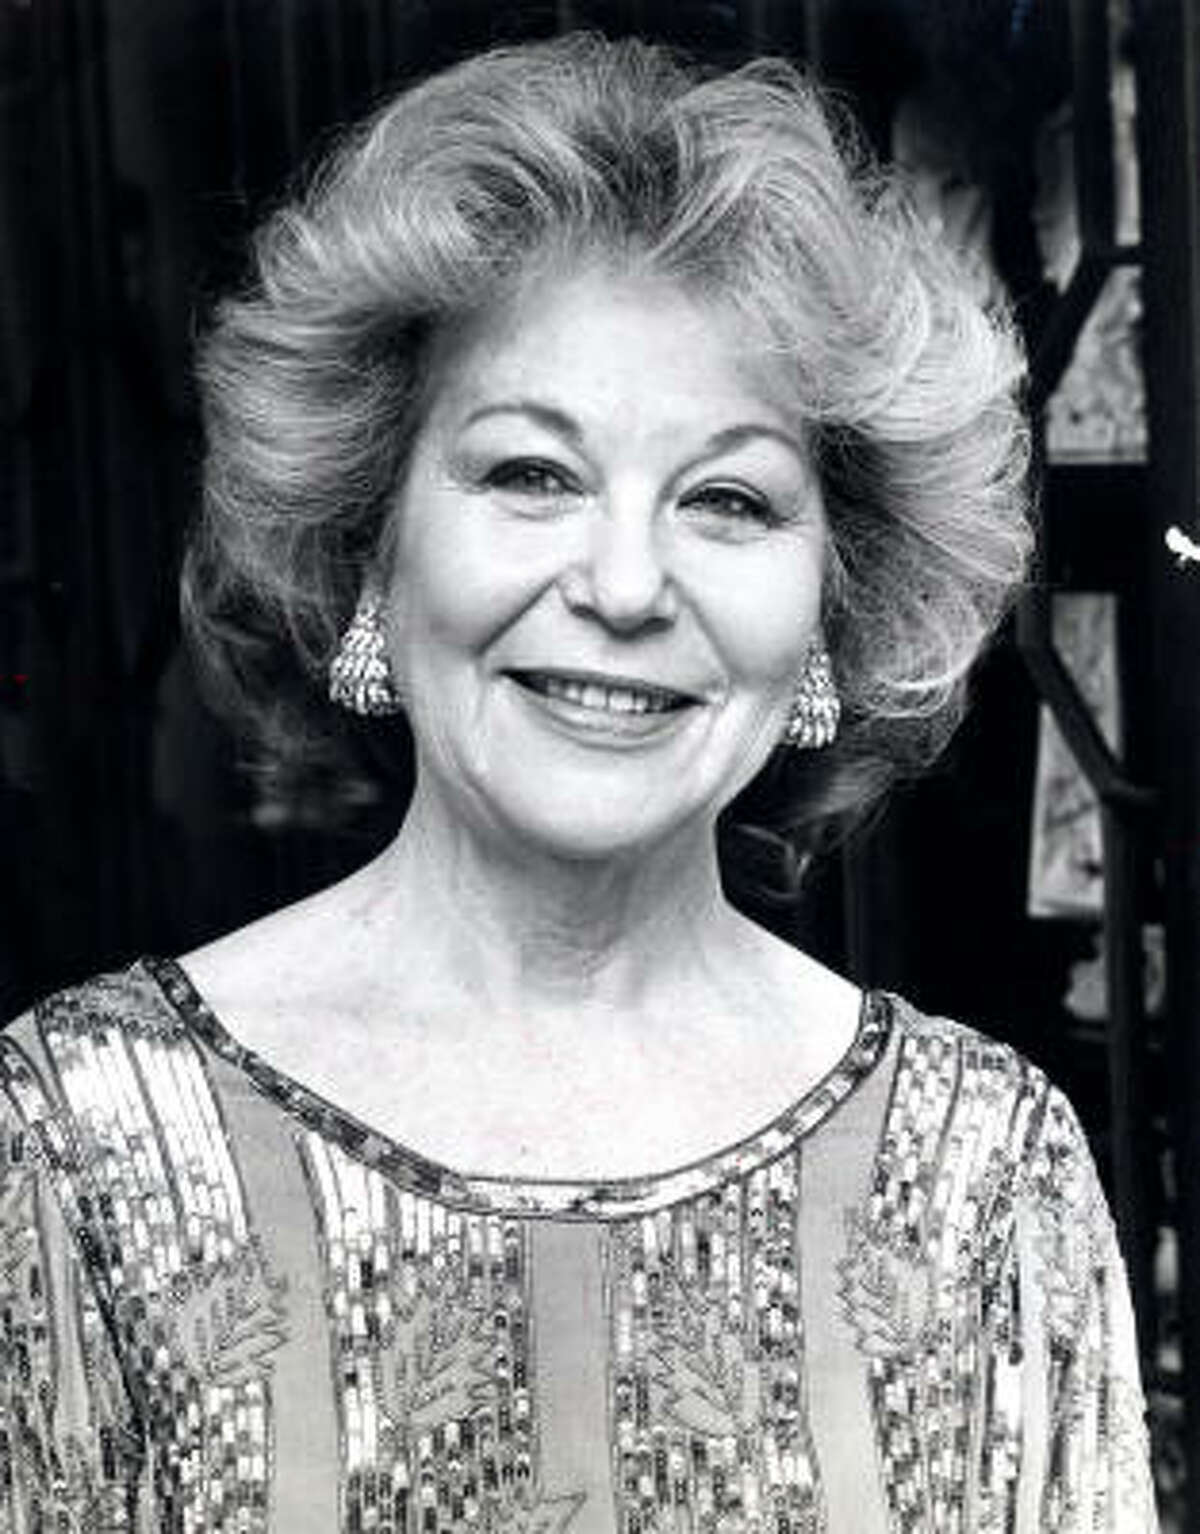 Ann Baum Sakowitz, shown in 1984, was active in Houston's civic affairs and culture.